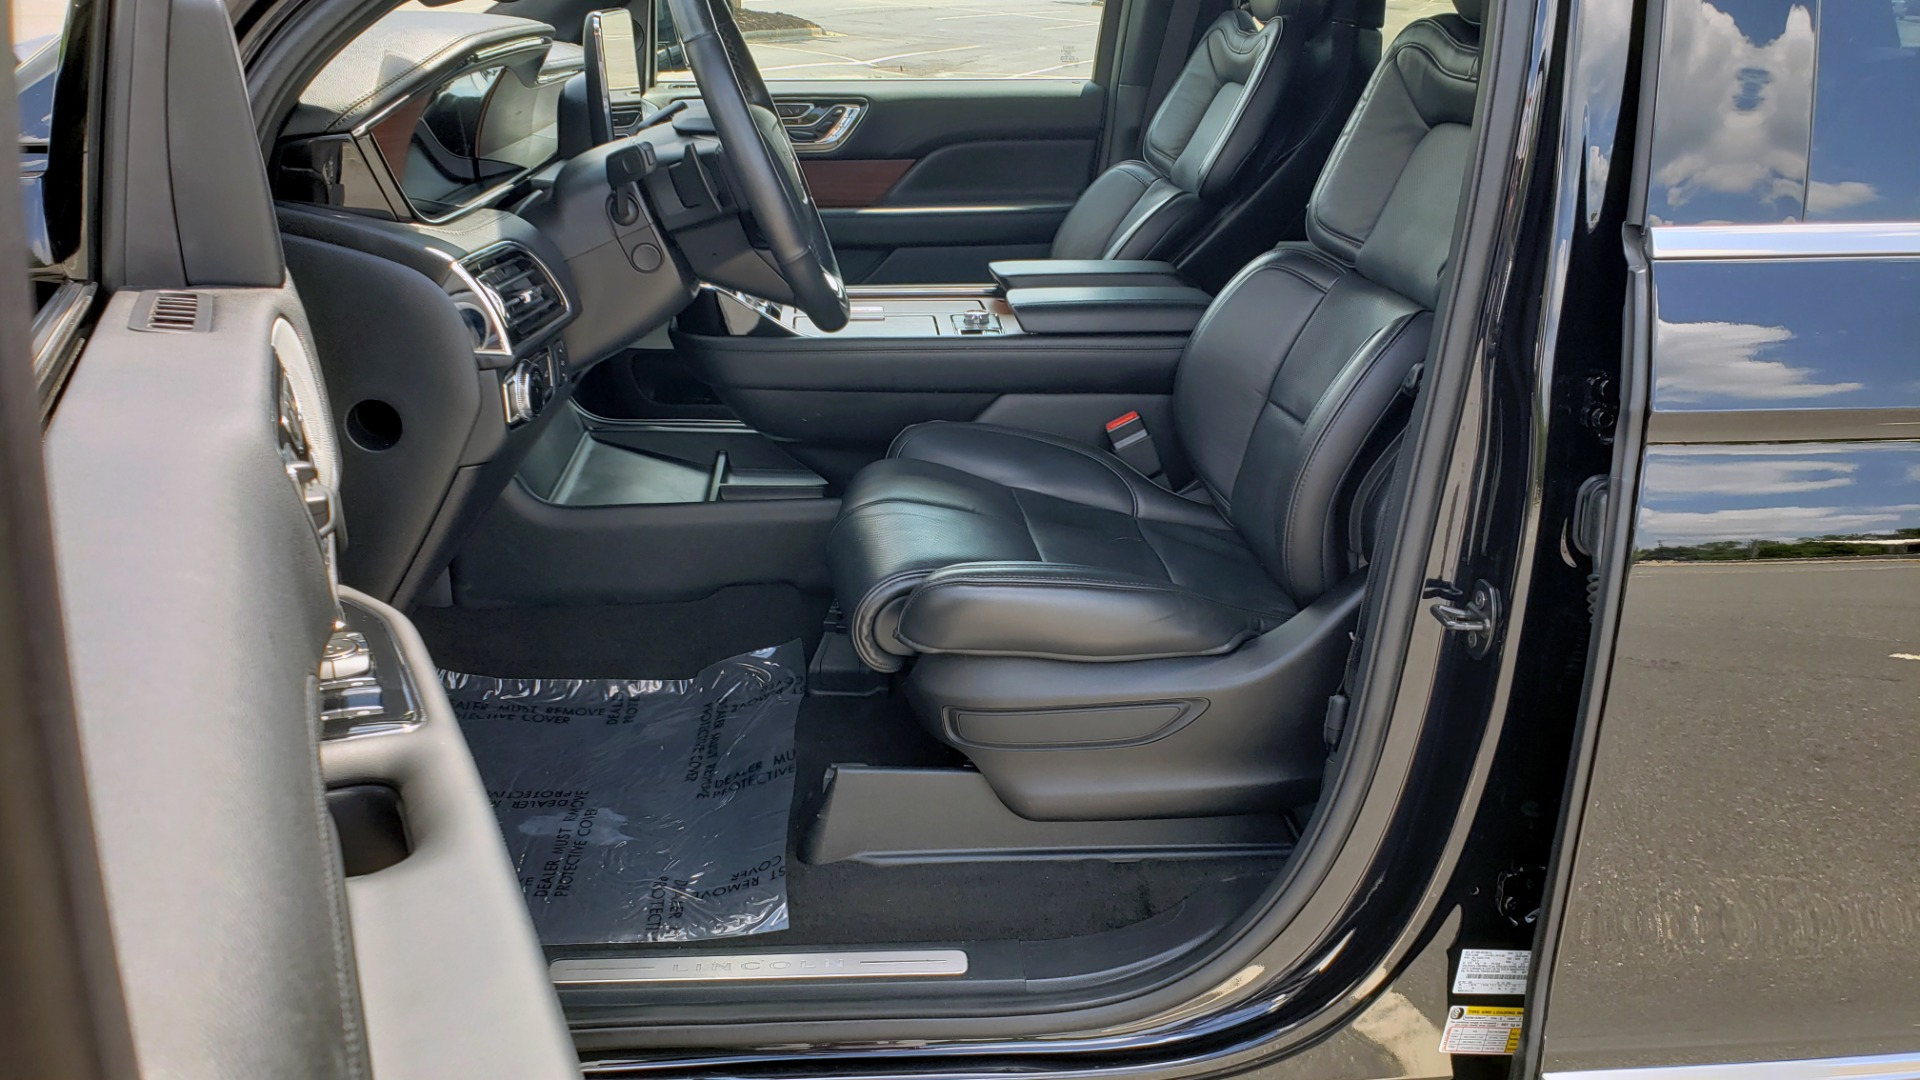 Used 2019 Lincoln NAVIGATOR RESERVE 4X4 / NAV / PANO-ROOF / REVEL ULTIMA AUDIO / 3-ROW / REARVIEW for sale $74,795 at Formula Imports in Charlotte NC 28227 41